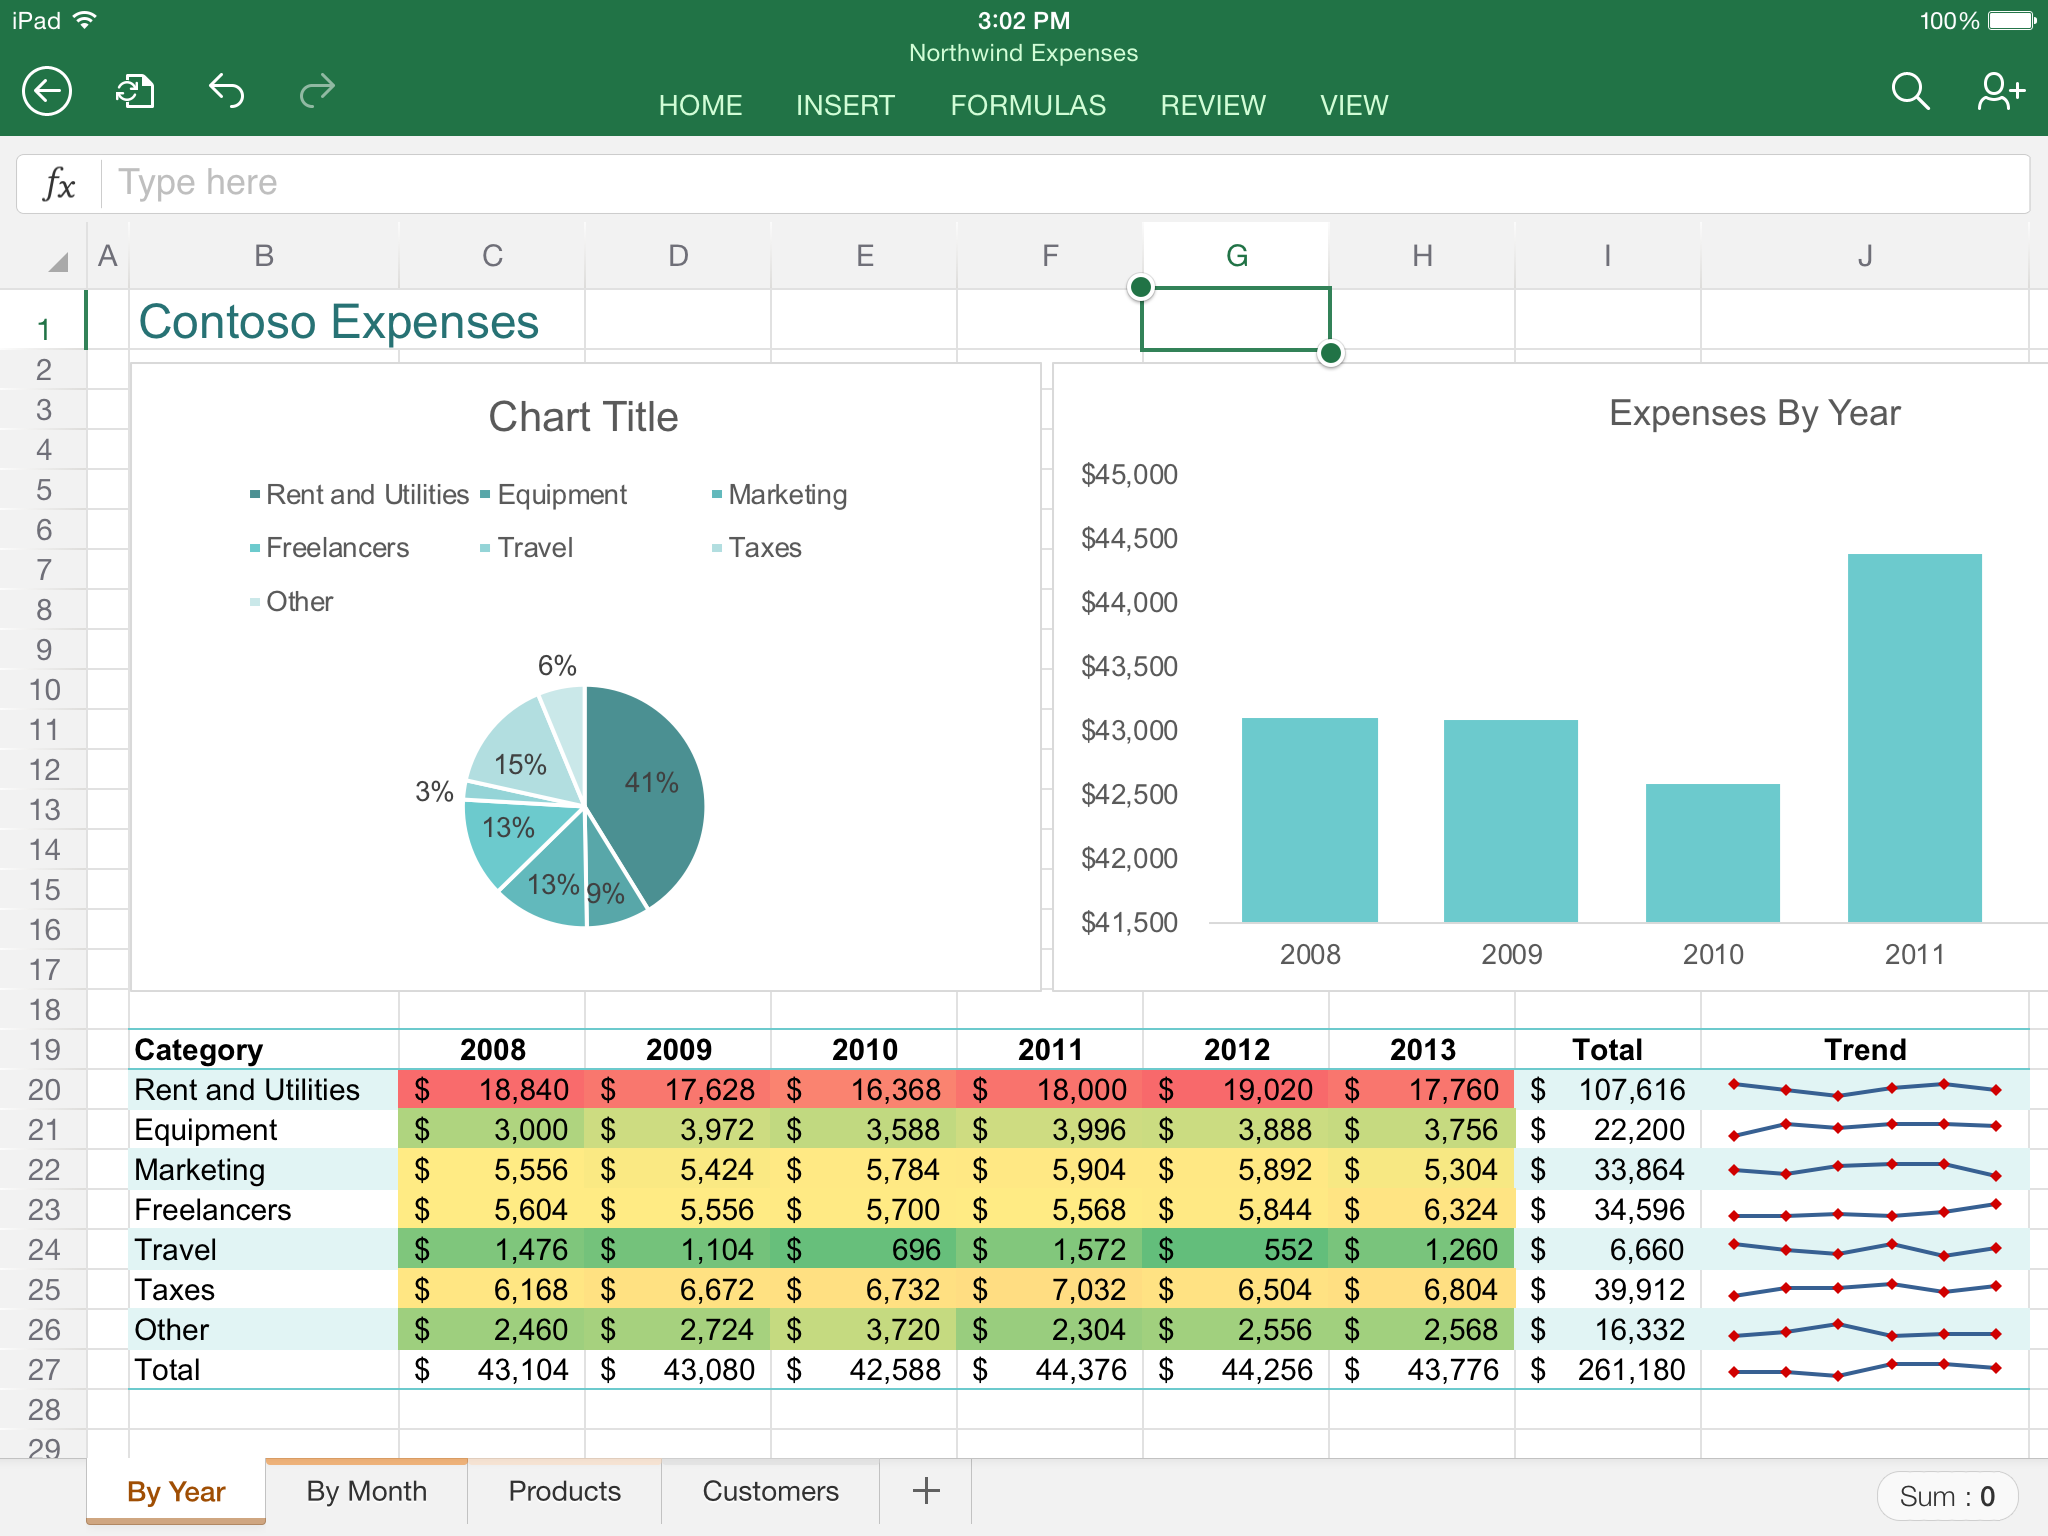 Ediblewildsus  Outstanding App Highlight Excel  Mobile Digital Now With Goodlooking Excel In Action With Divine Black Scholes Option Pricing Model Excel Also Concatenating In Excel In Addition Excel If Na Then  And Calculate Percent Increase Excel As Well As Combine Two Excel Columns Additionally Excel Math Worksheets From Youstonybrookedu With Ediblewildsus  Goodlooking App Highlight Excel  Mobile Digital Now With Divine Excel In Action And Outstanding Black Scholes Option Pricing Model Excel Also Concatenating In Excel In Addition Excel If Na Then  From Youstonybrookedu